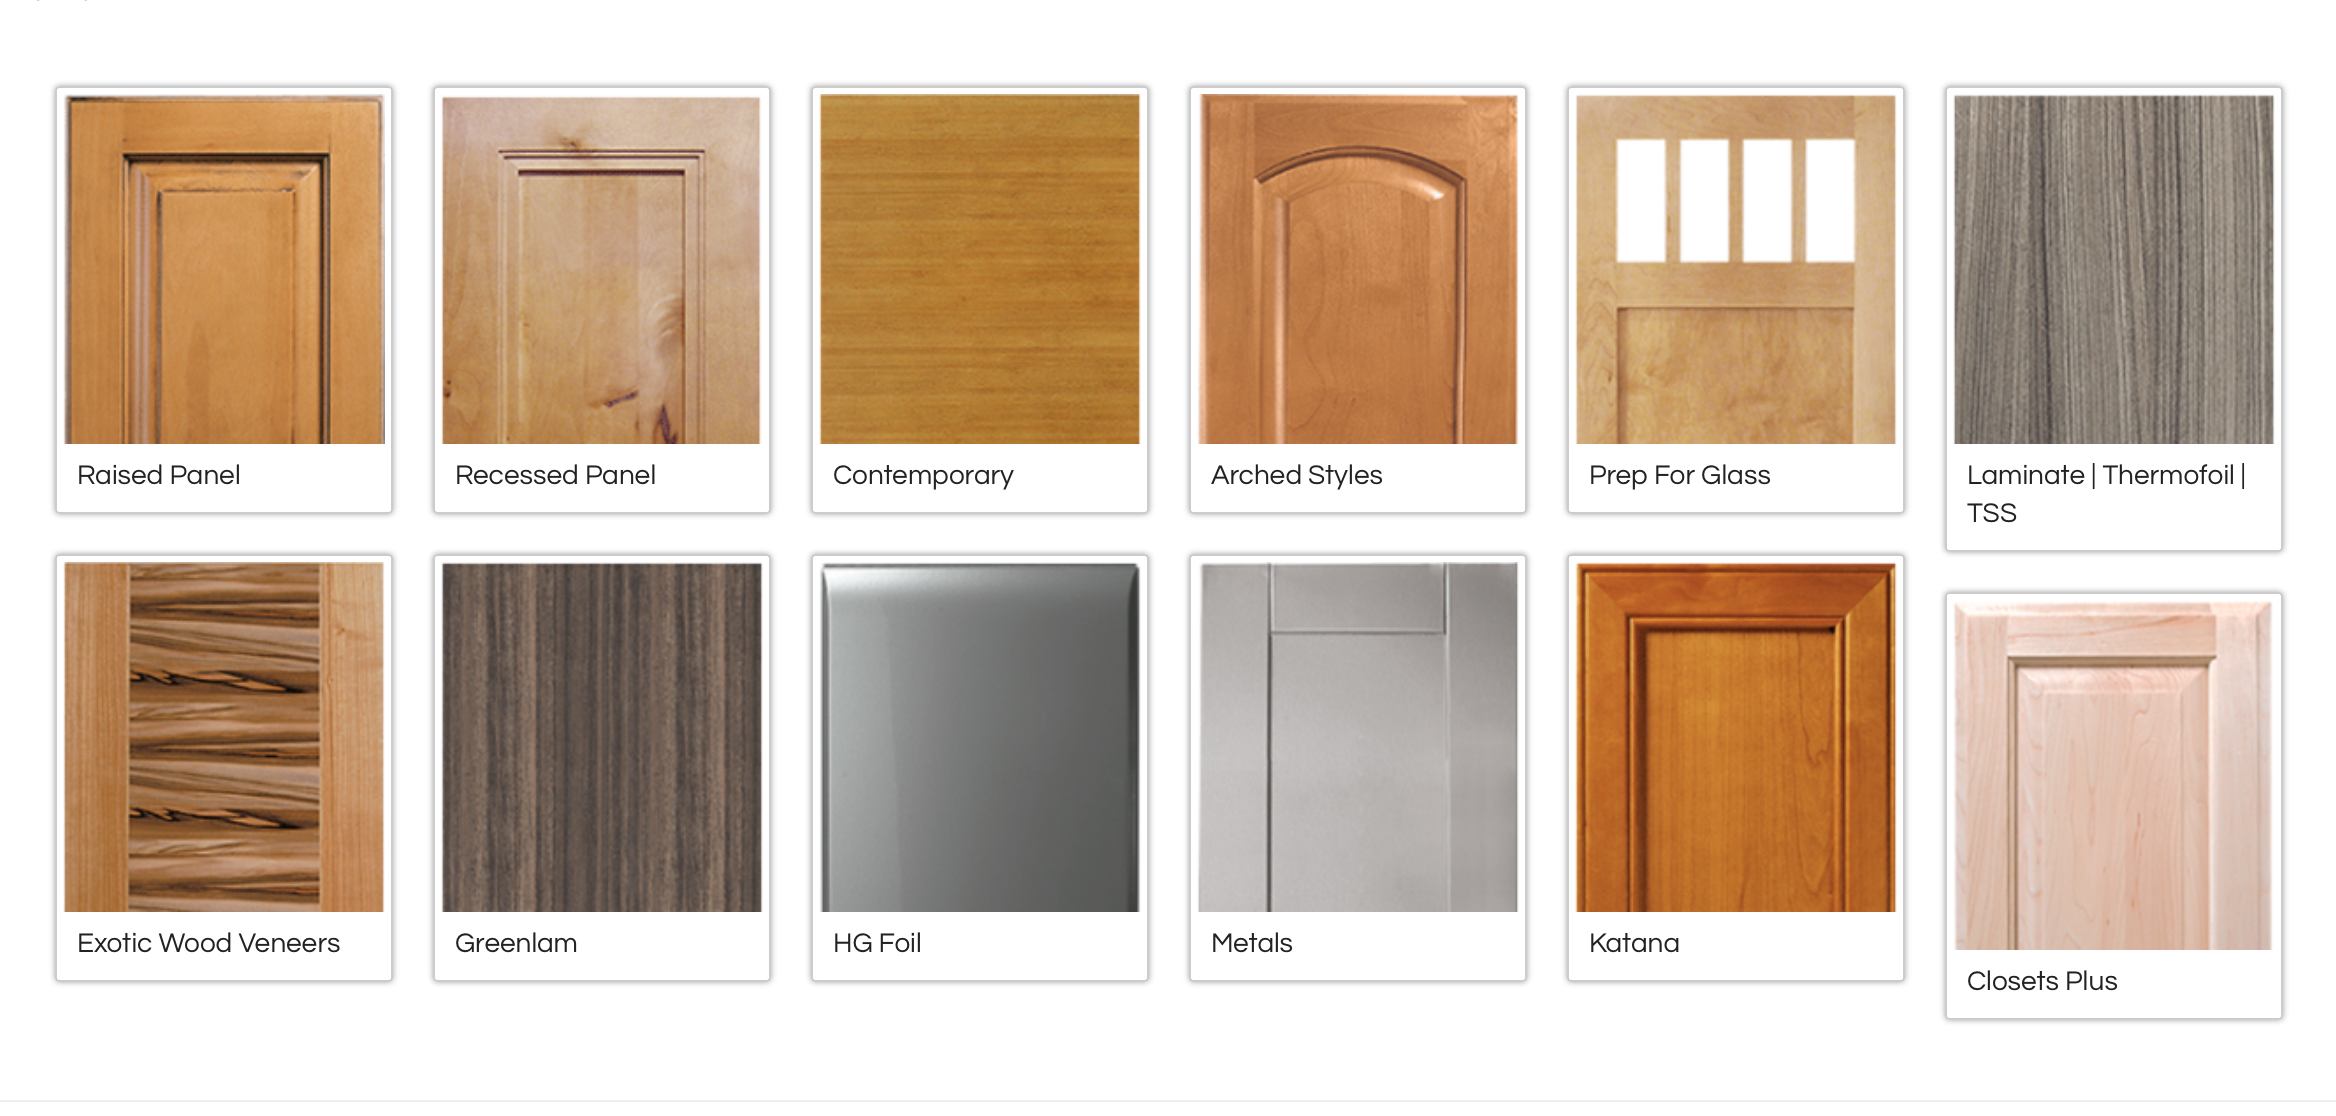 Kitchen Cabinet Door Styles Pictures Cabinets For Any Budget In Sonoma Marin Napa Canyon